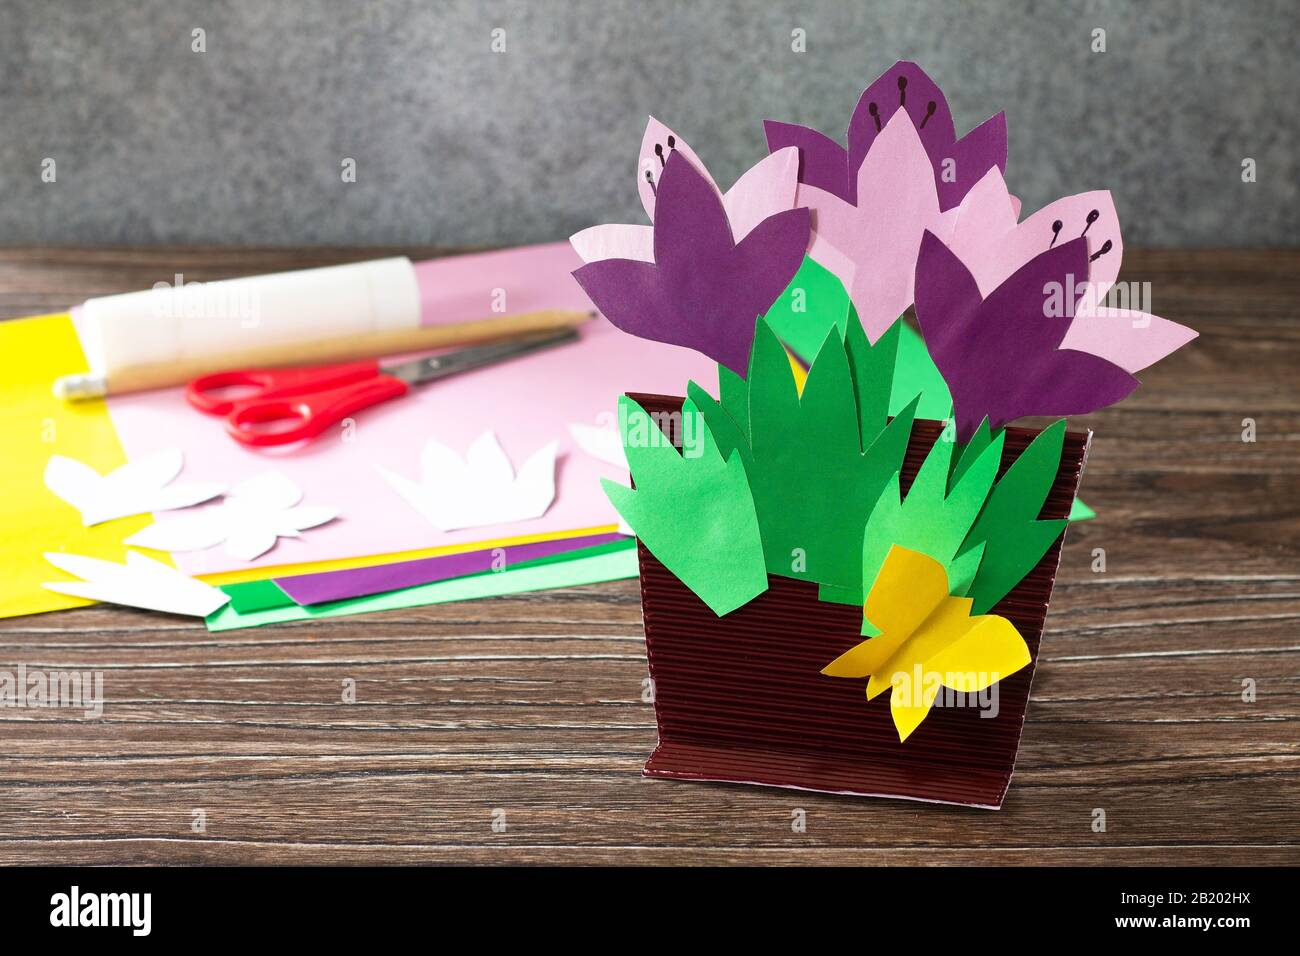 Greeting Card For Mother S Day With Spring Flowers Crocuses Handmade Paper Craft Ideas The Project Of Children S Creativity Crafts Crafts For Chil Stock Photo Alamy